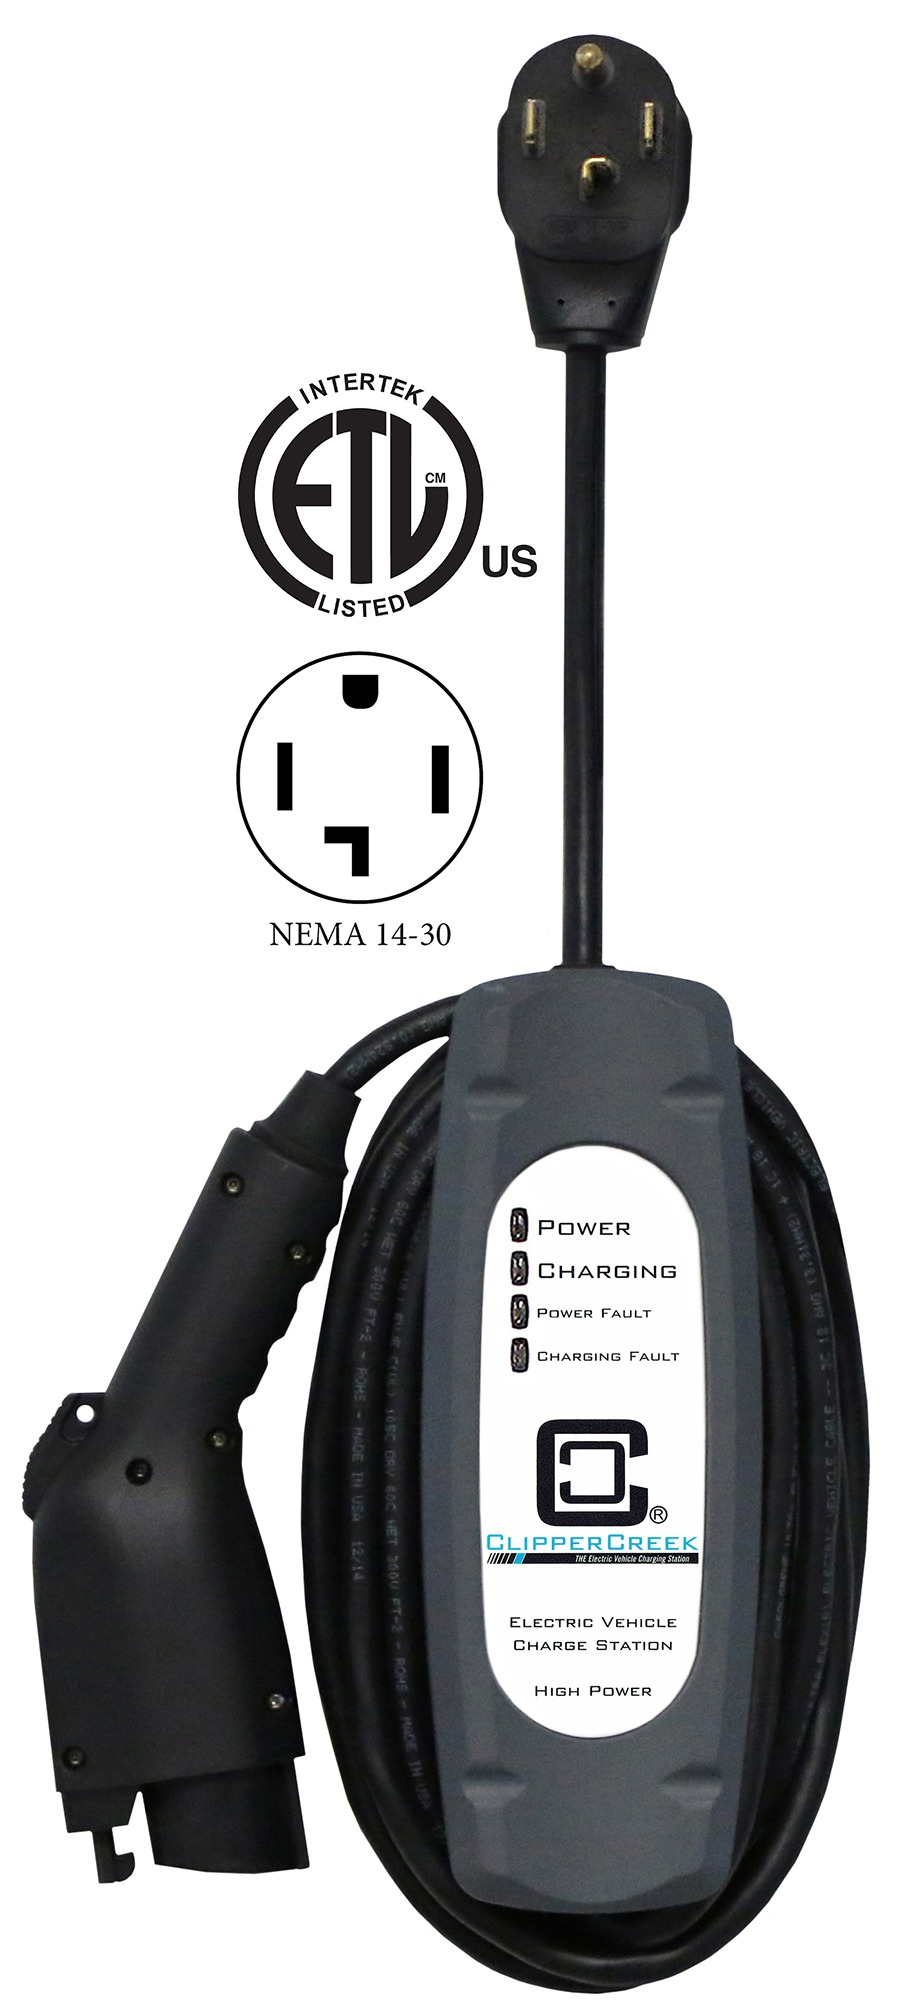 What Plugs Are Available On Ev Charging Stations Nema 14 50 Schematic Wiring Diagram 6 50a Plug This Is Common For Welders Or Plasma Cutters Its Installed Onto A Dedicated Circuit To Match The Rating Of